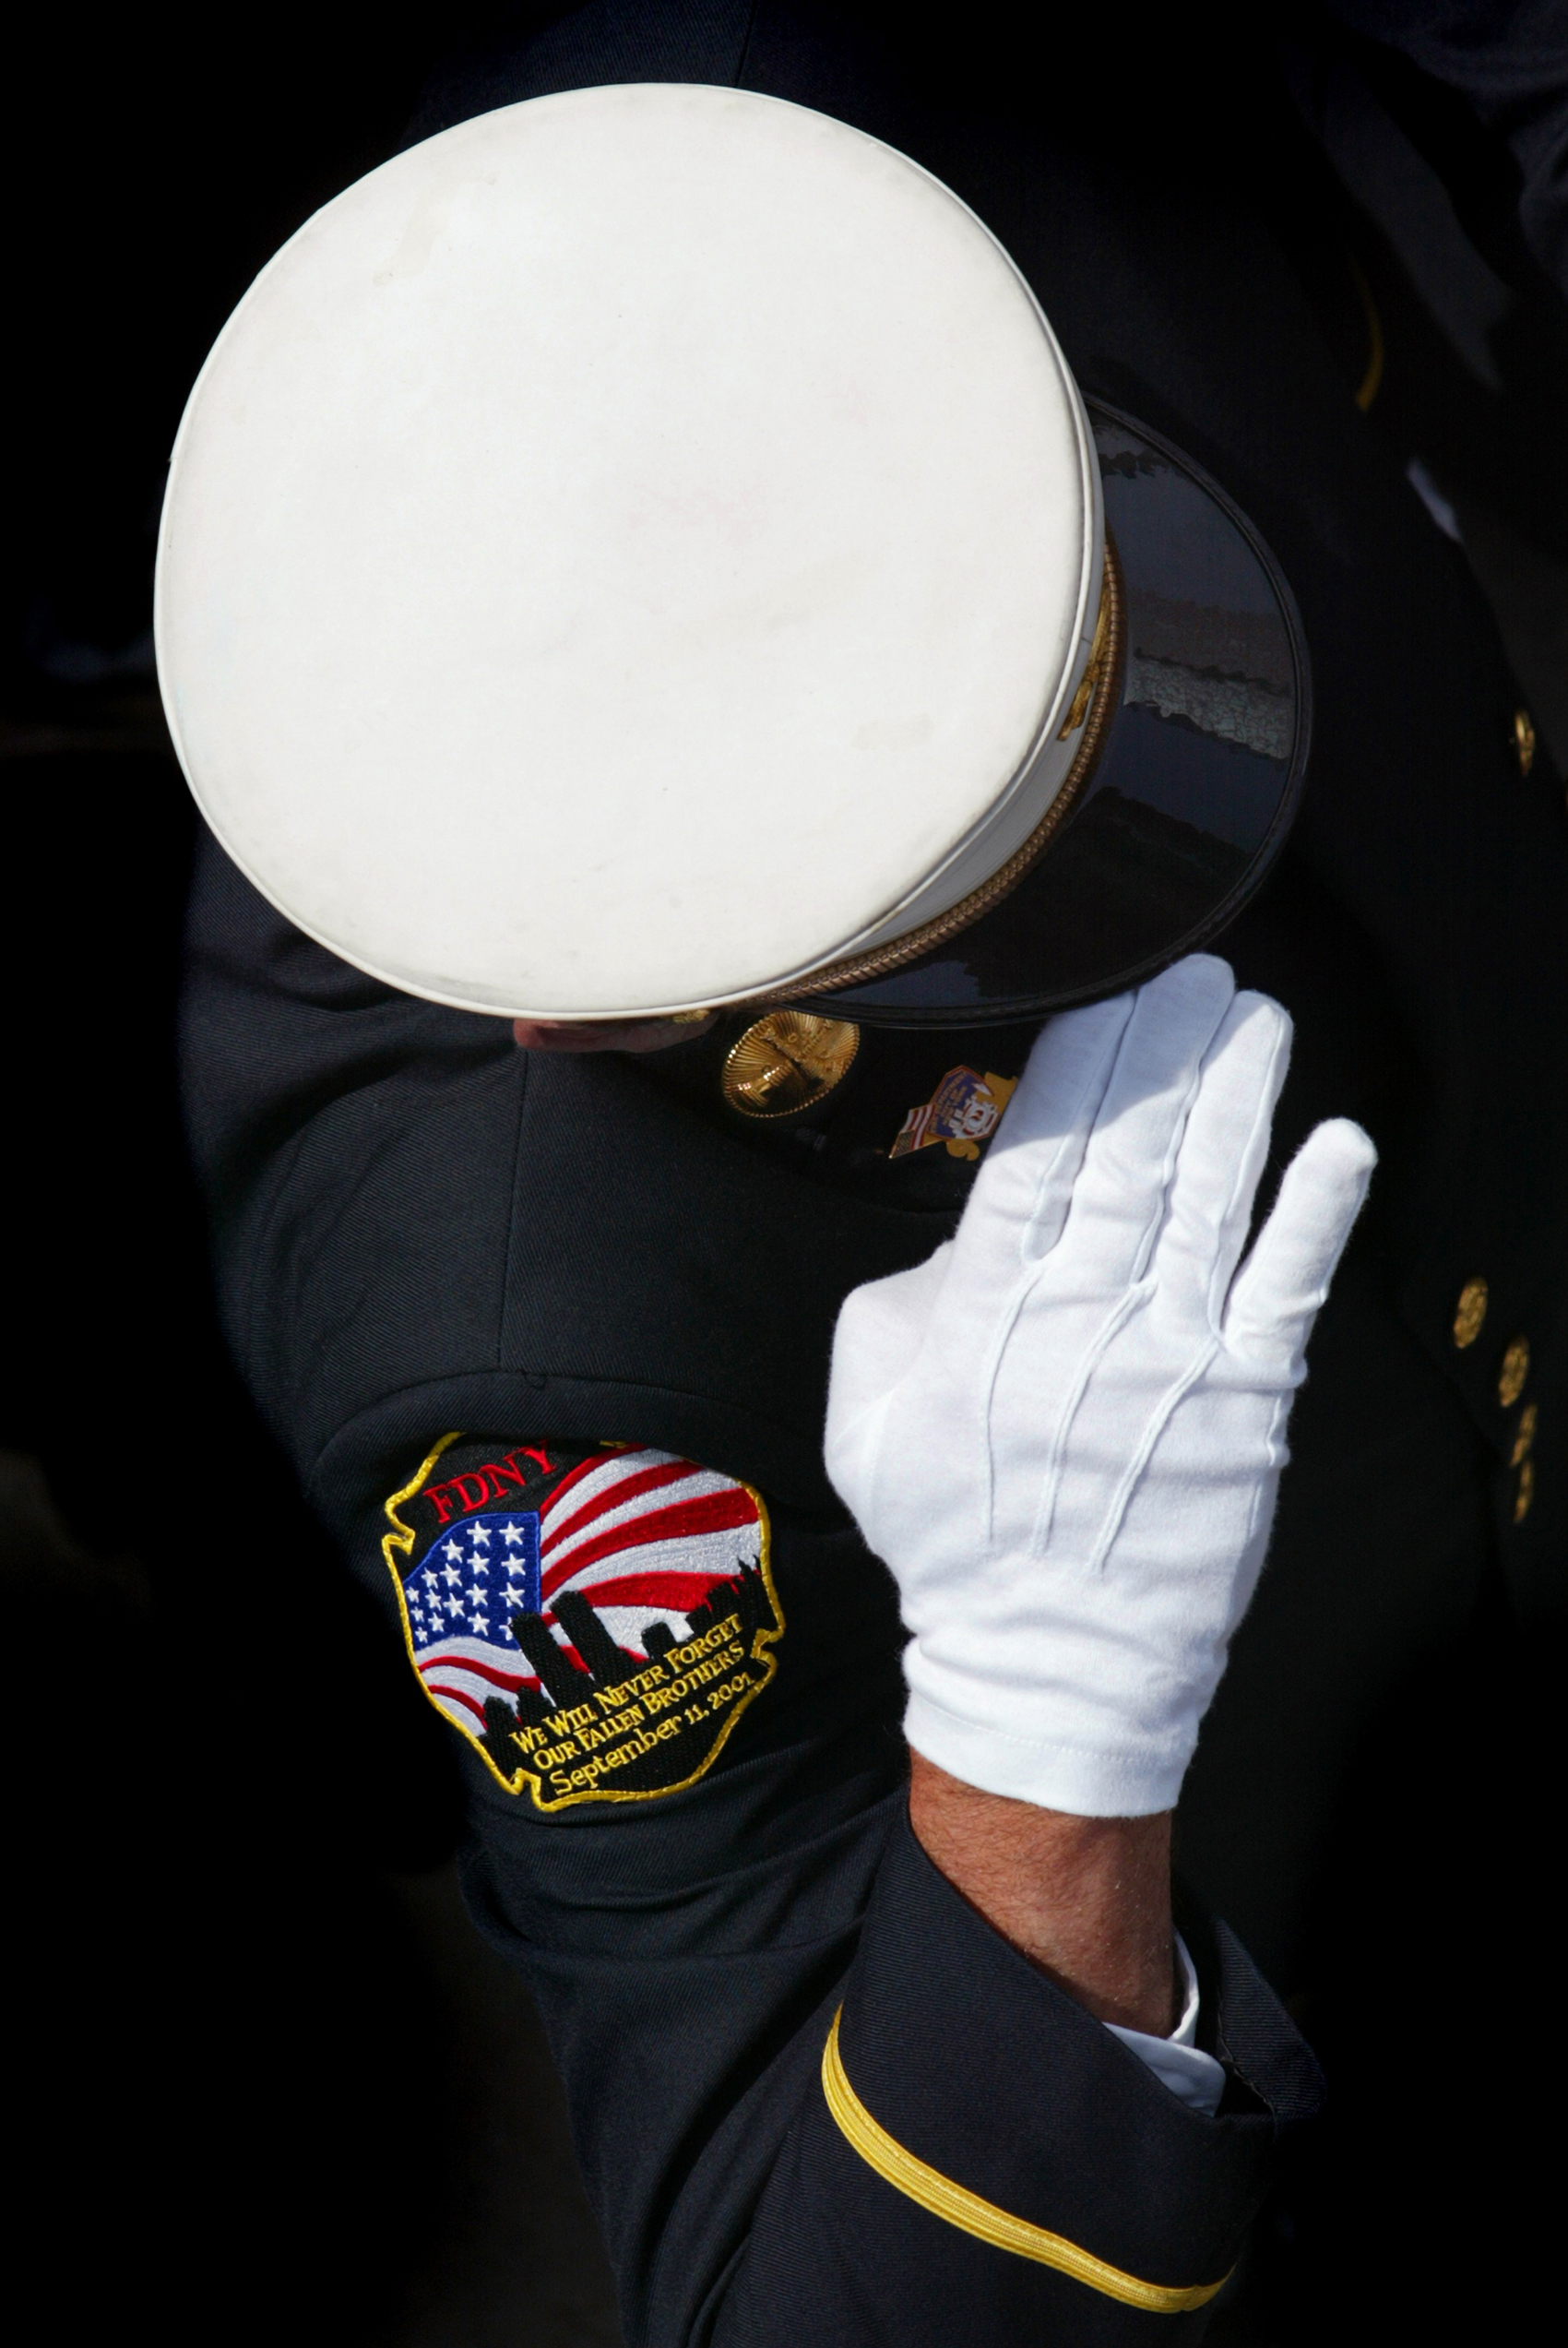 A final salute for a fallen comrade. 343 firefighters were killed in the rescue attempts following the terrorist attack on 9/11. Scores more are suffering from ailments linked to the clean-up efforts.